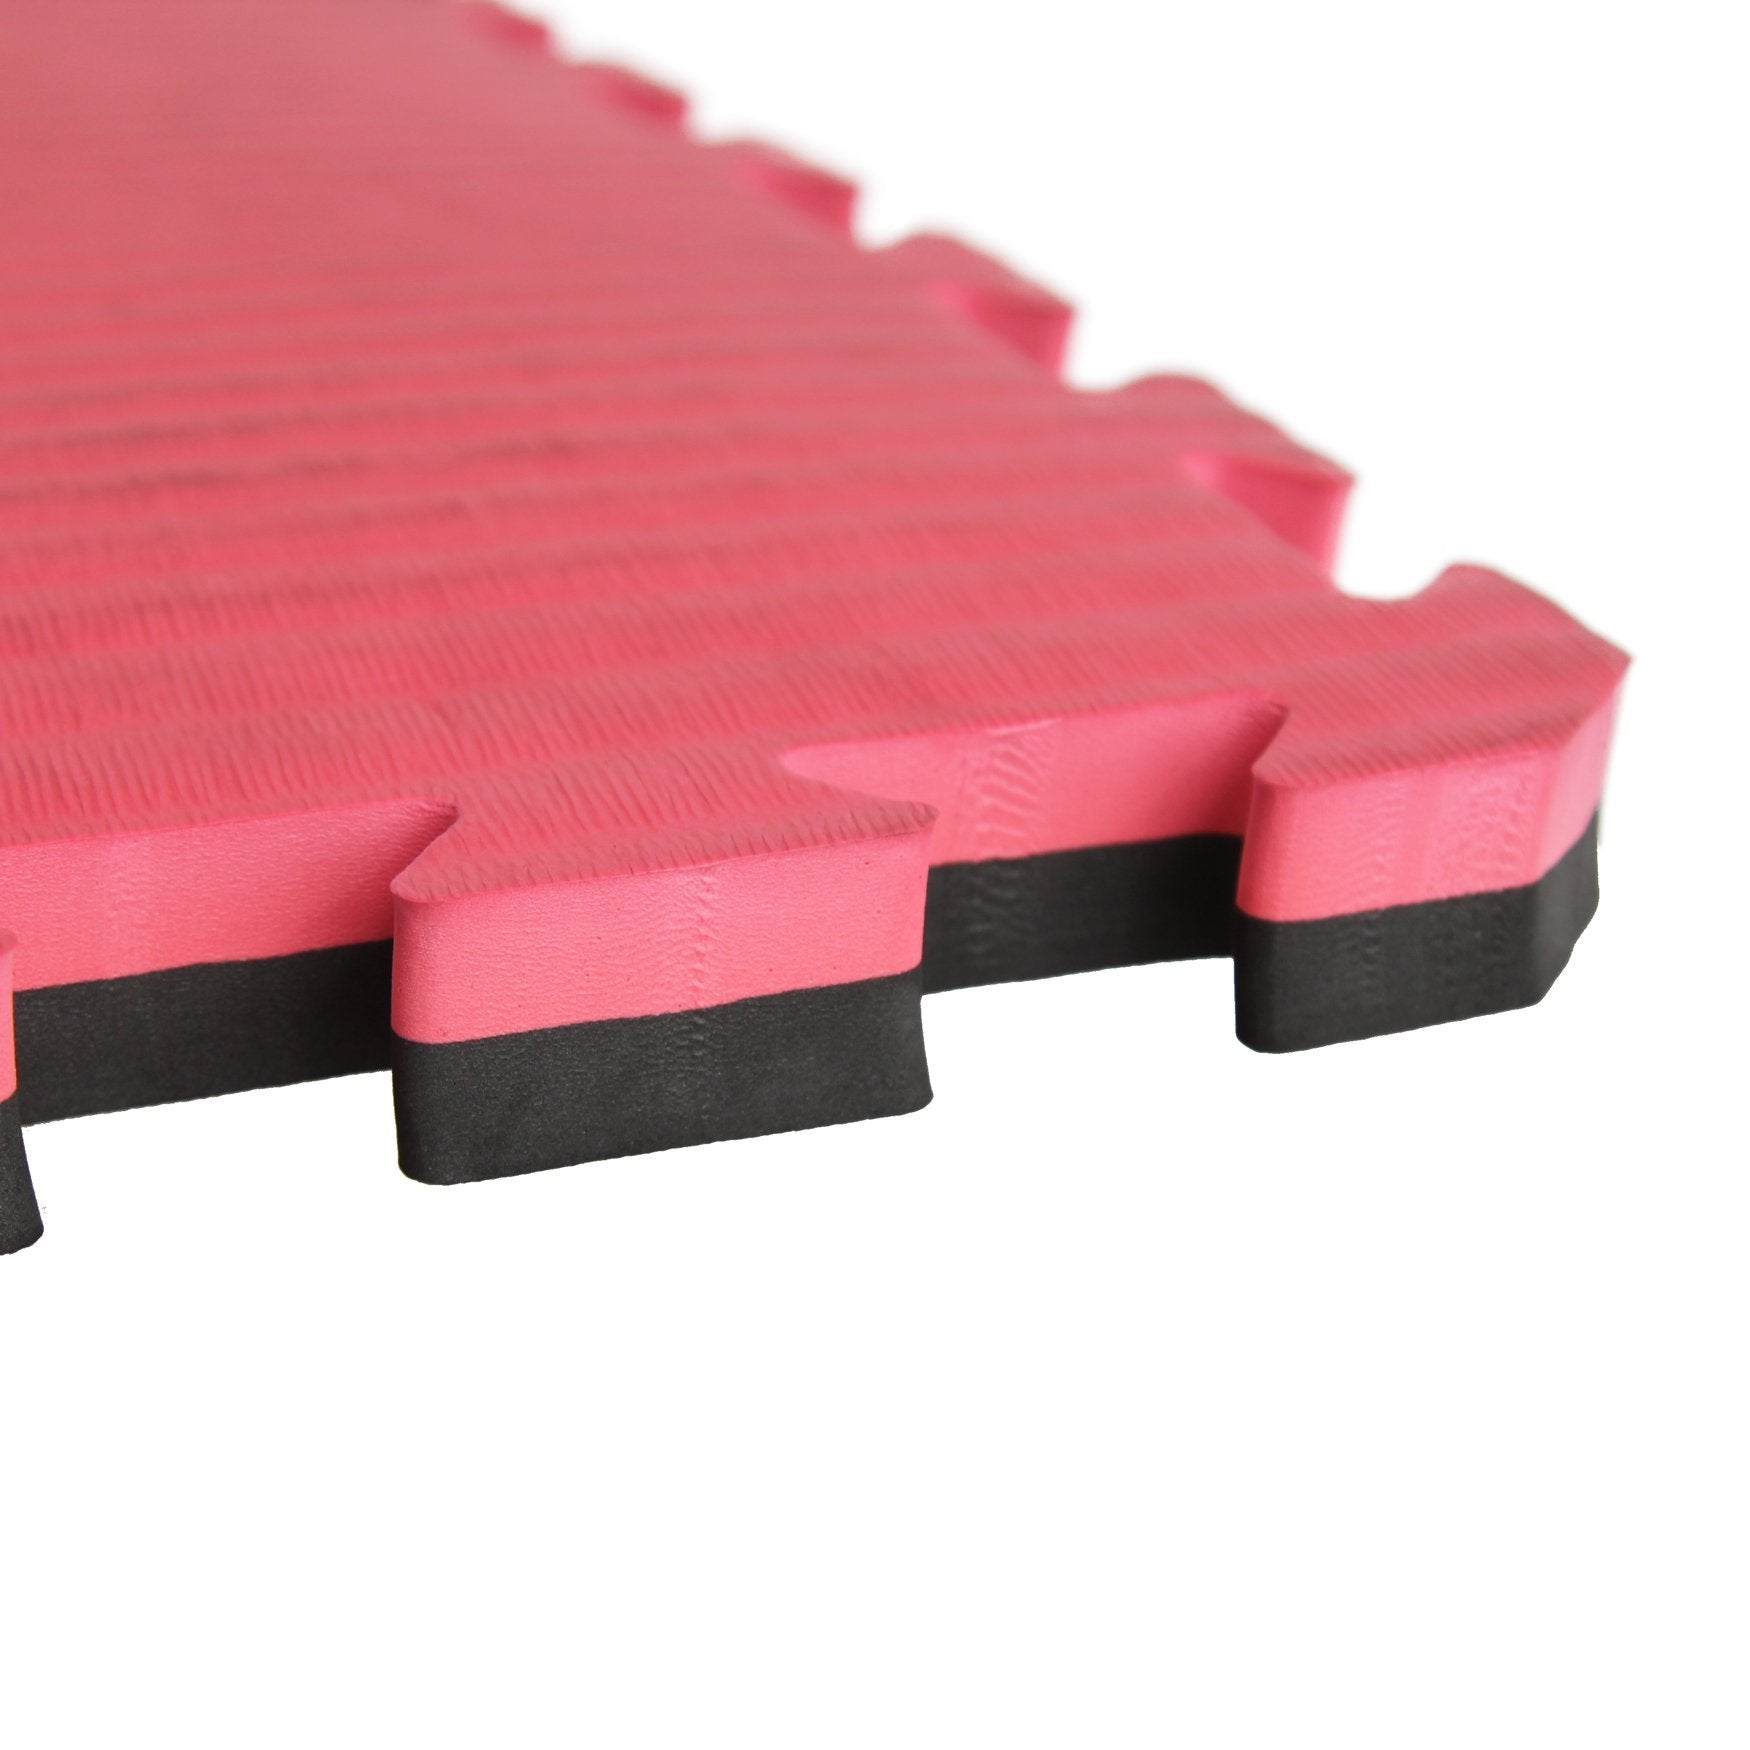 SMAI Jigsaw Mat - 3cm Red/Black-Functional Fitness-SMAI-Red/Black-Cardio Online